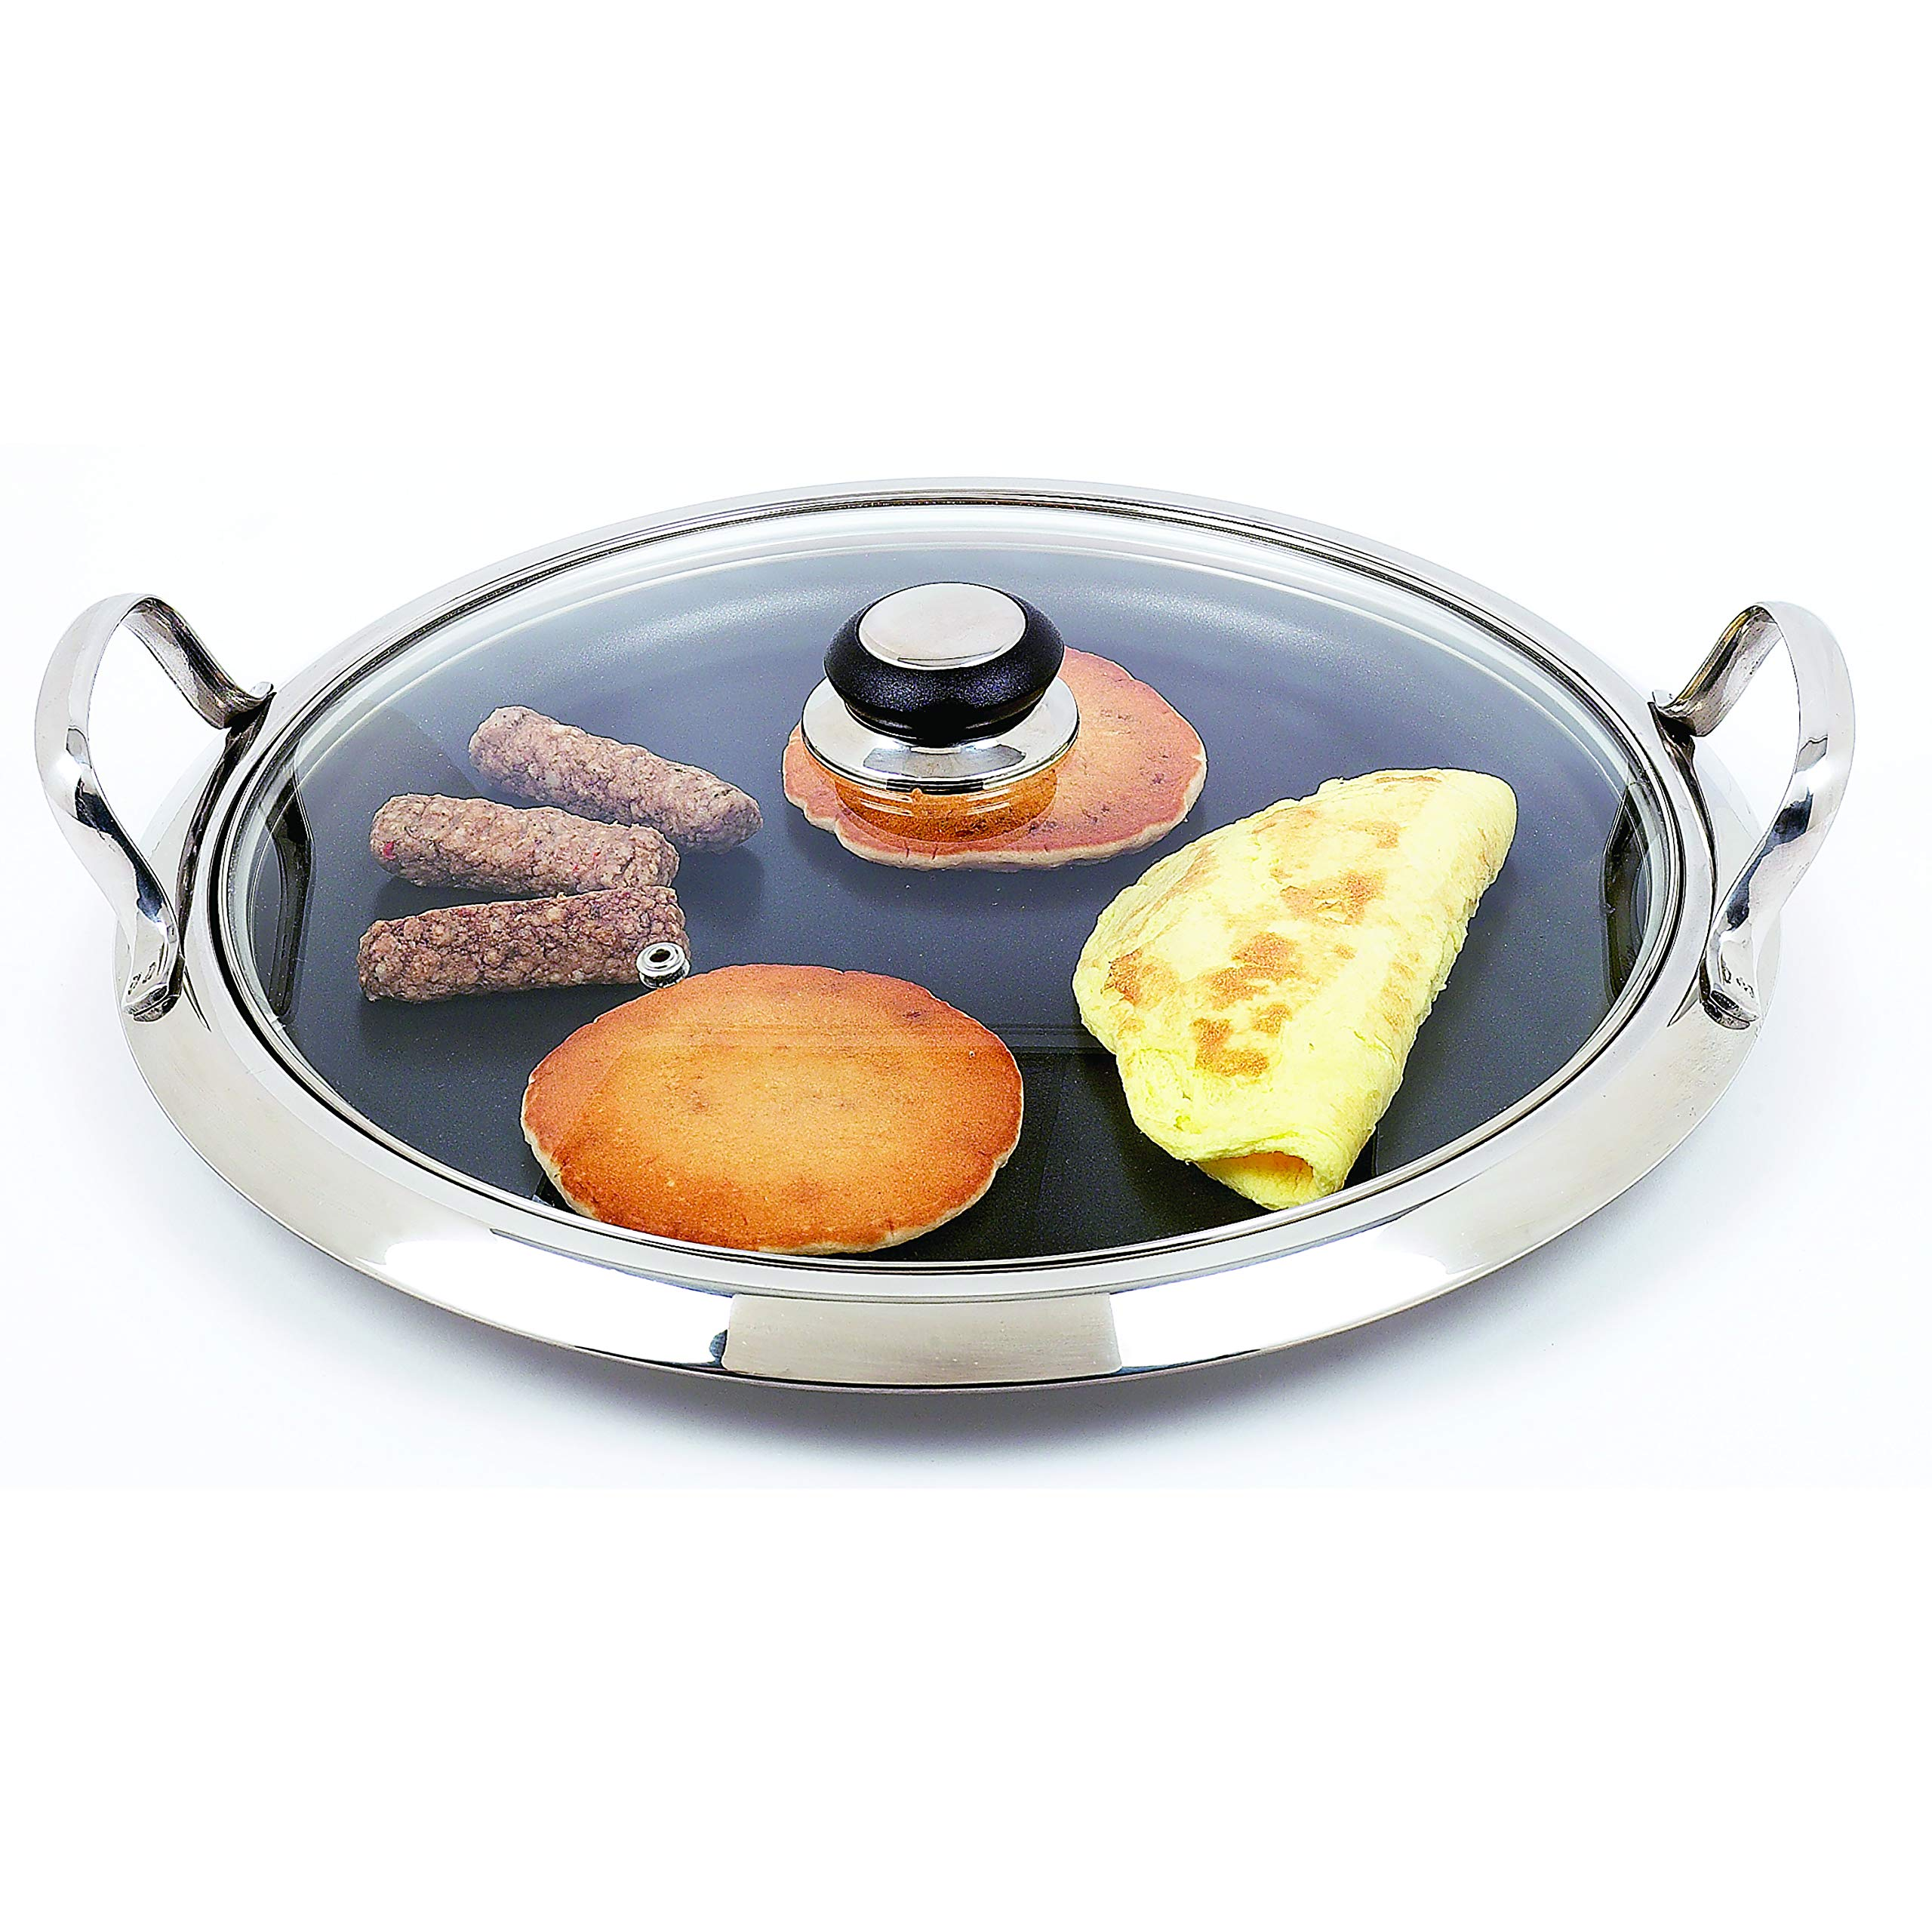 Chef's Secret by Maxam 12-Element Stainless Steel Round Griddle by Maxam